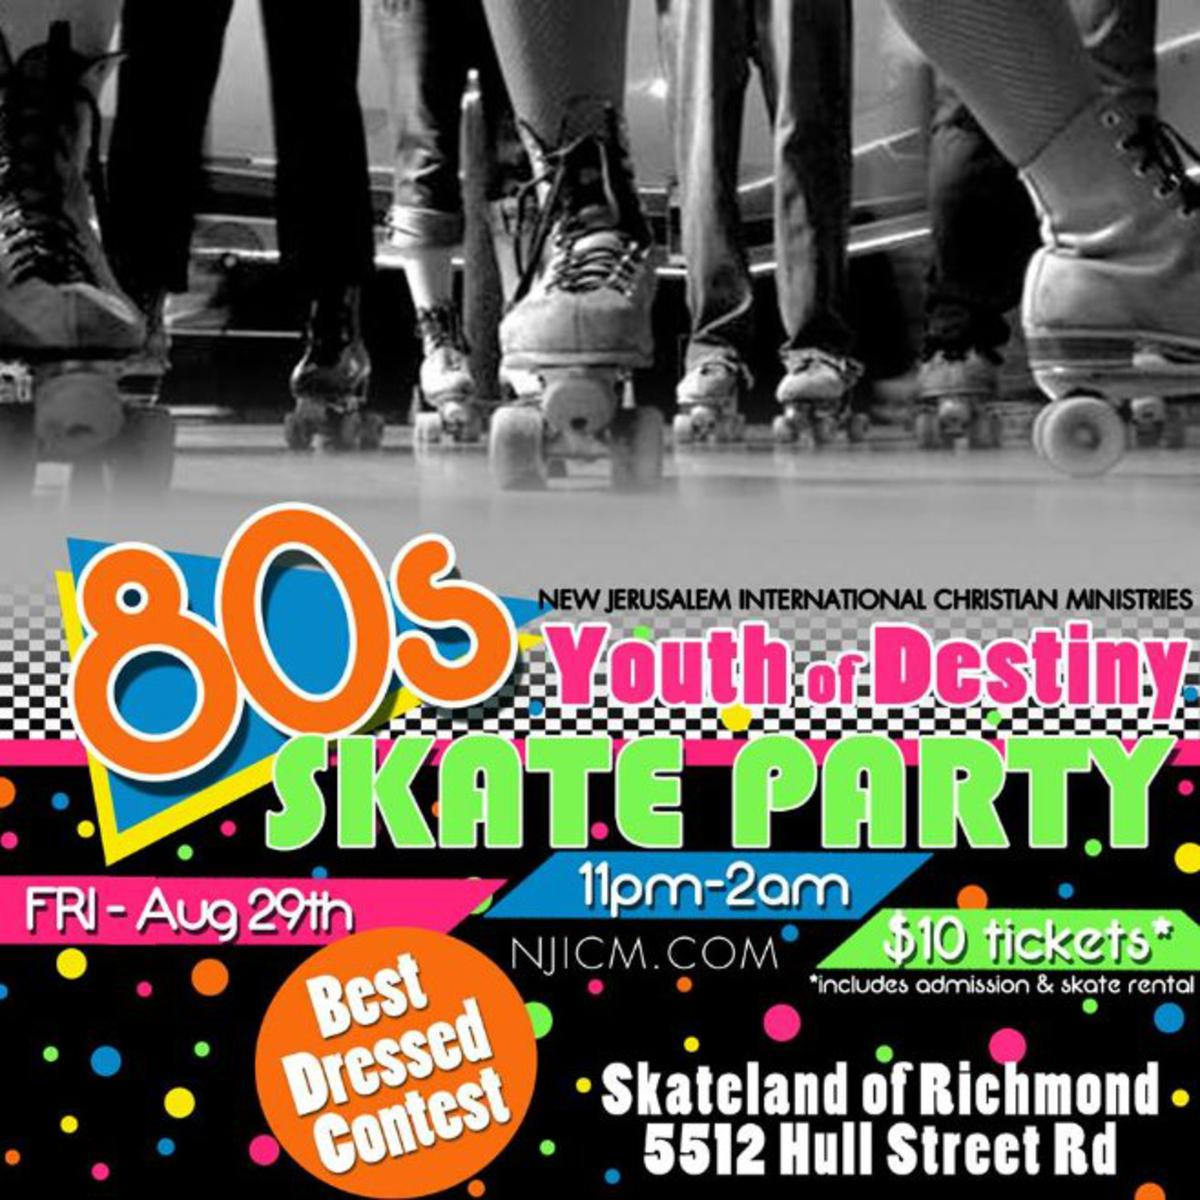 80's Skate Party